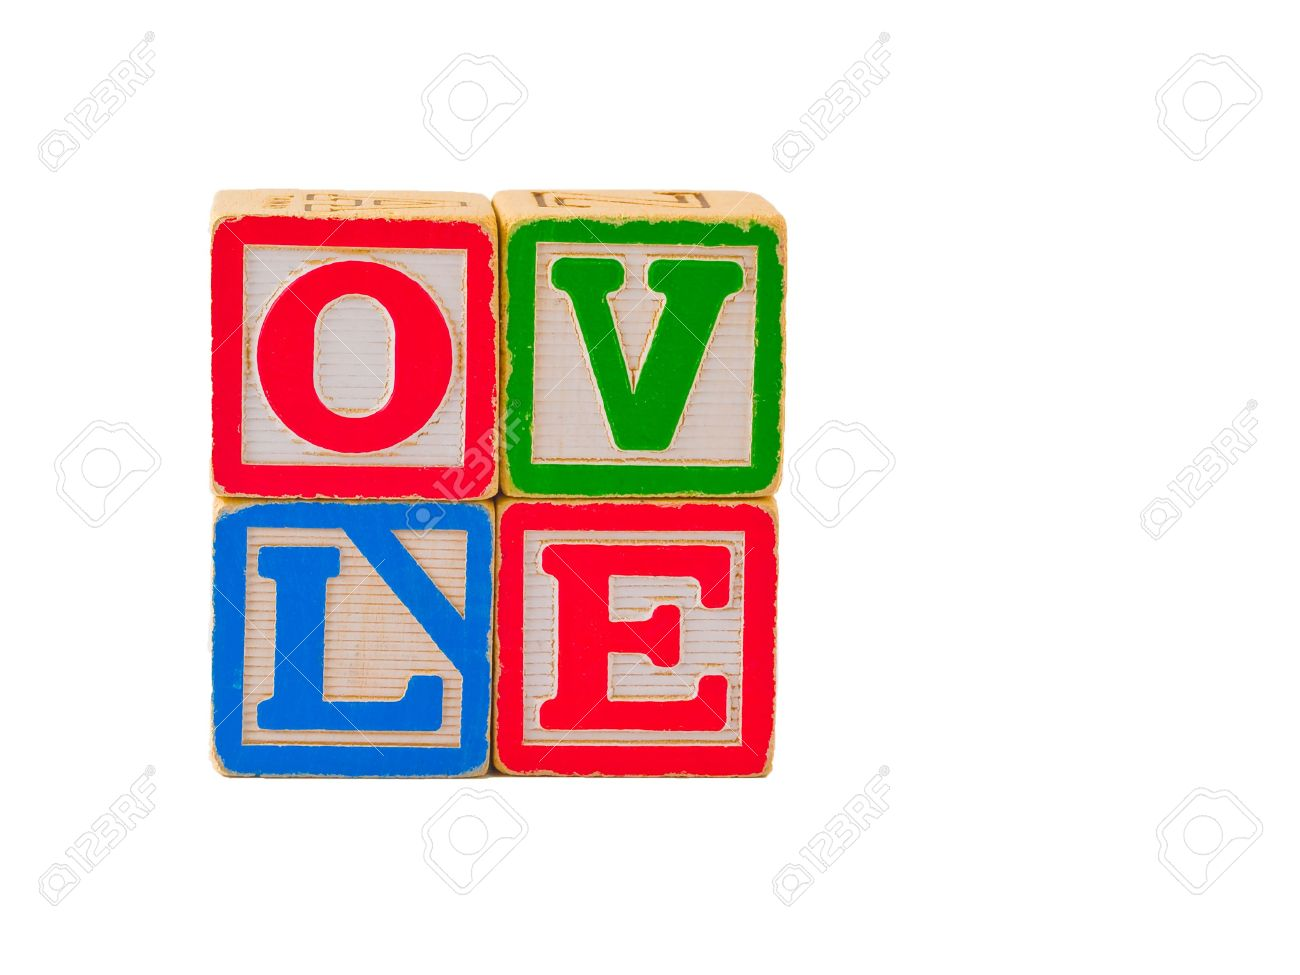 Love block word clipart vector stock The Word LOVE Spelled Out Using Some Old Alphabet Blocks. Stock ... vector stock